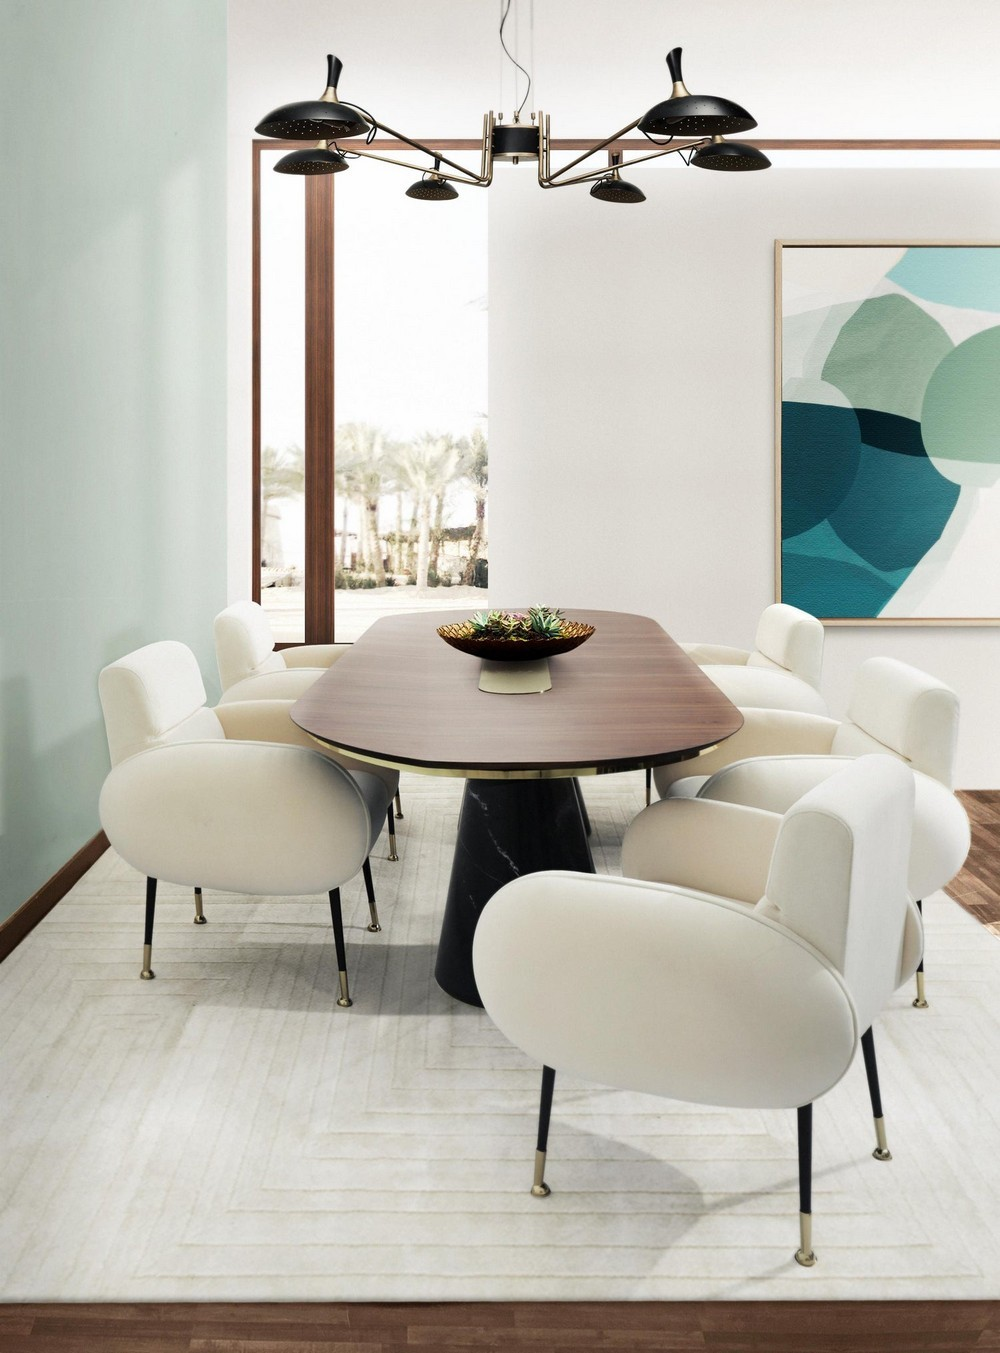 Art Deco Retro Vibe: The Dining Tables dining tables Art Deco Retro Vibe: The Dining Tables bertoia